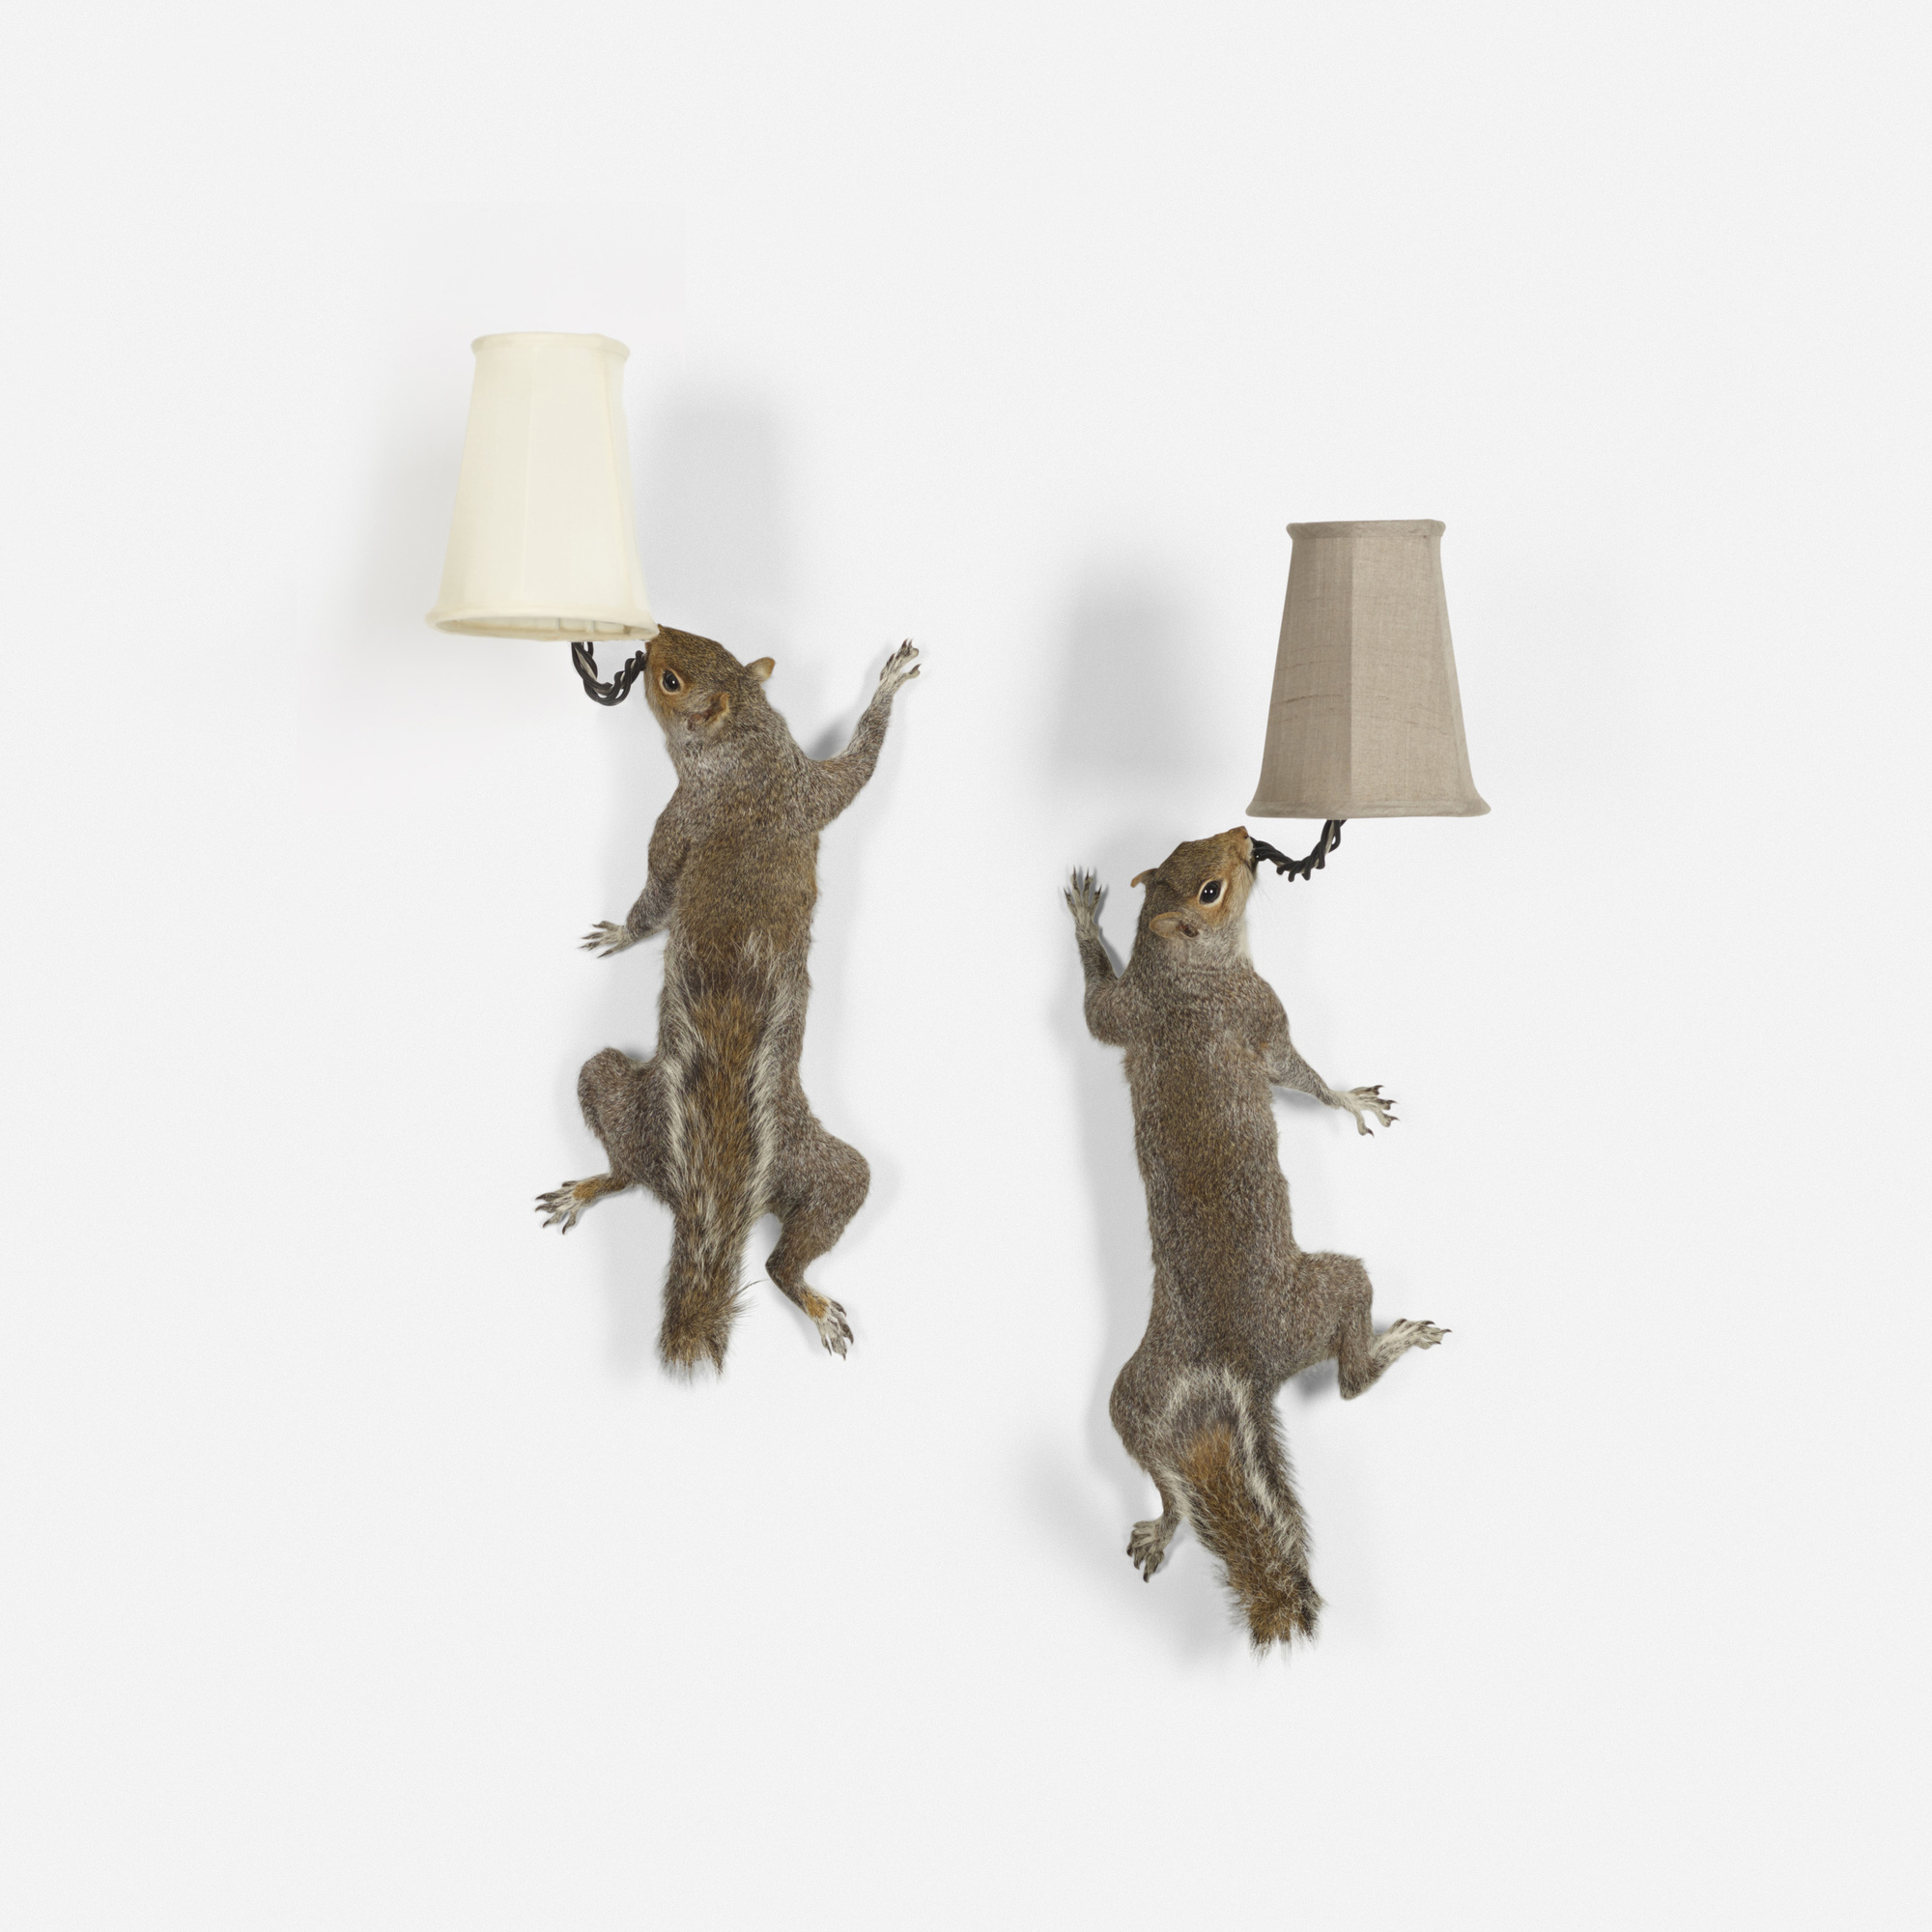 214: Alex Randall / Squirrel Wall Light, pair (1 of 1)